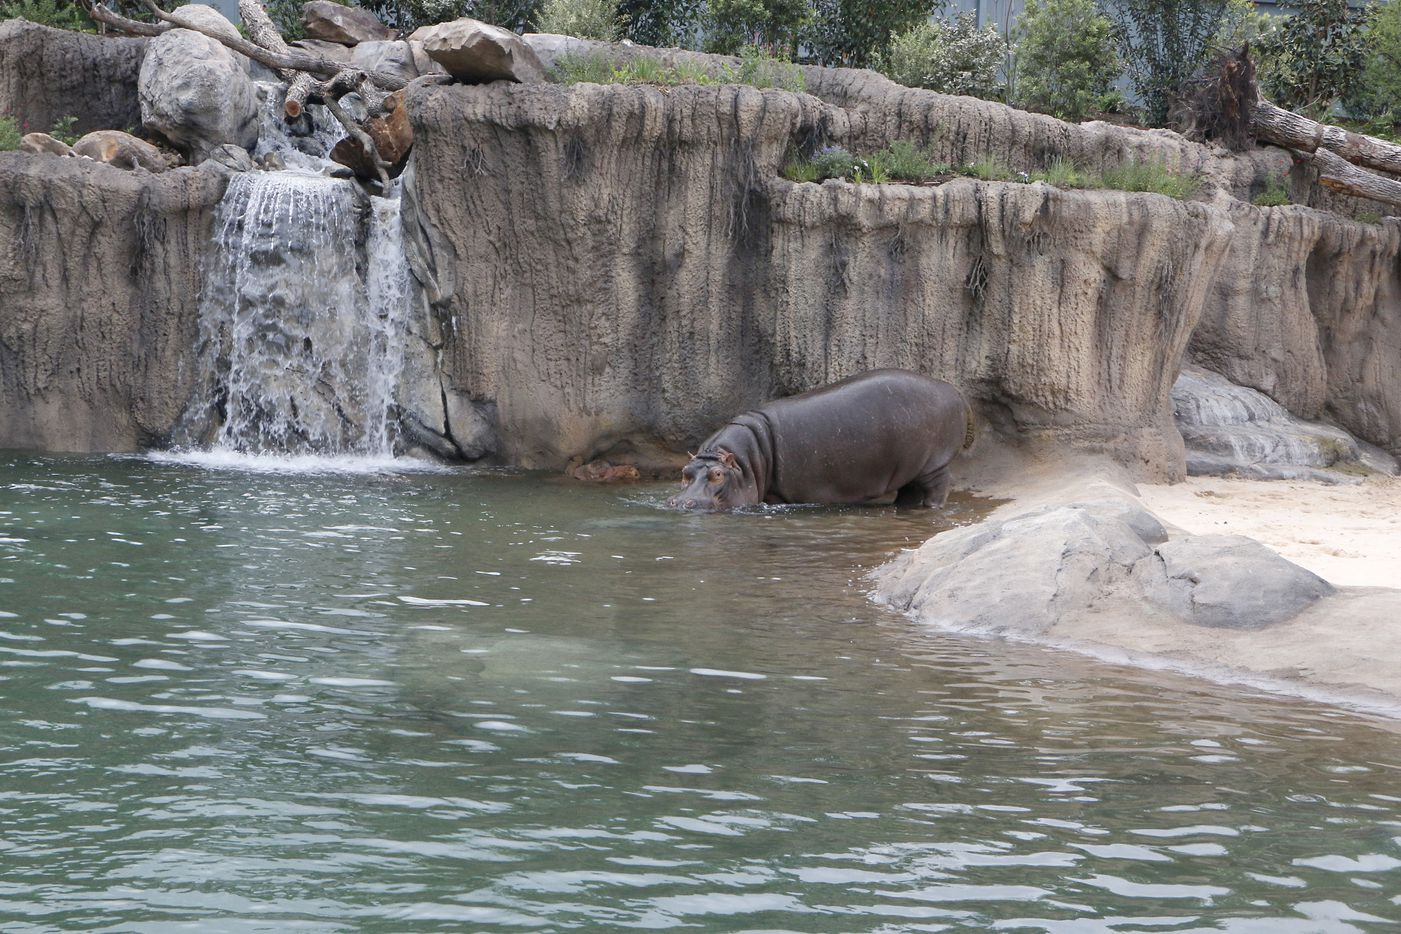 Adhama enters the water off the sandy beach at the Simmons Hippo Outpost at the Dallas Zoo.